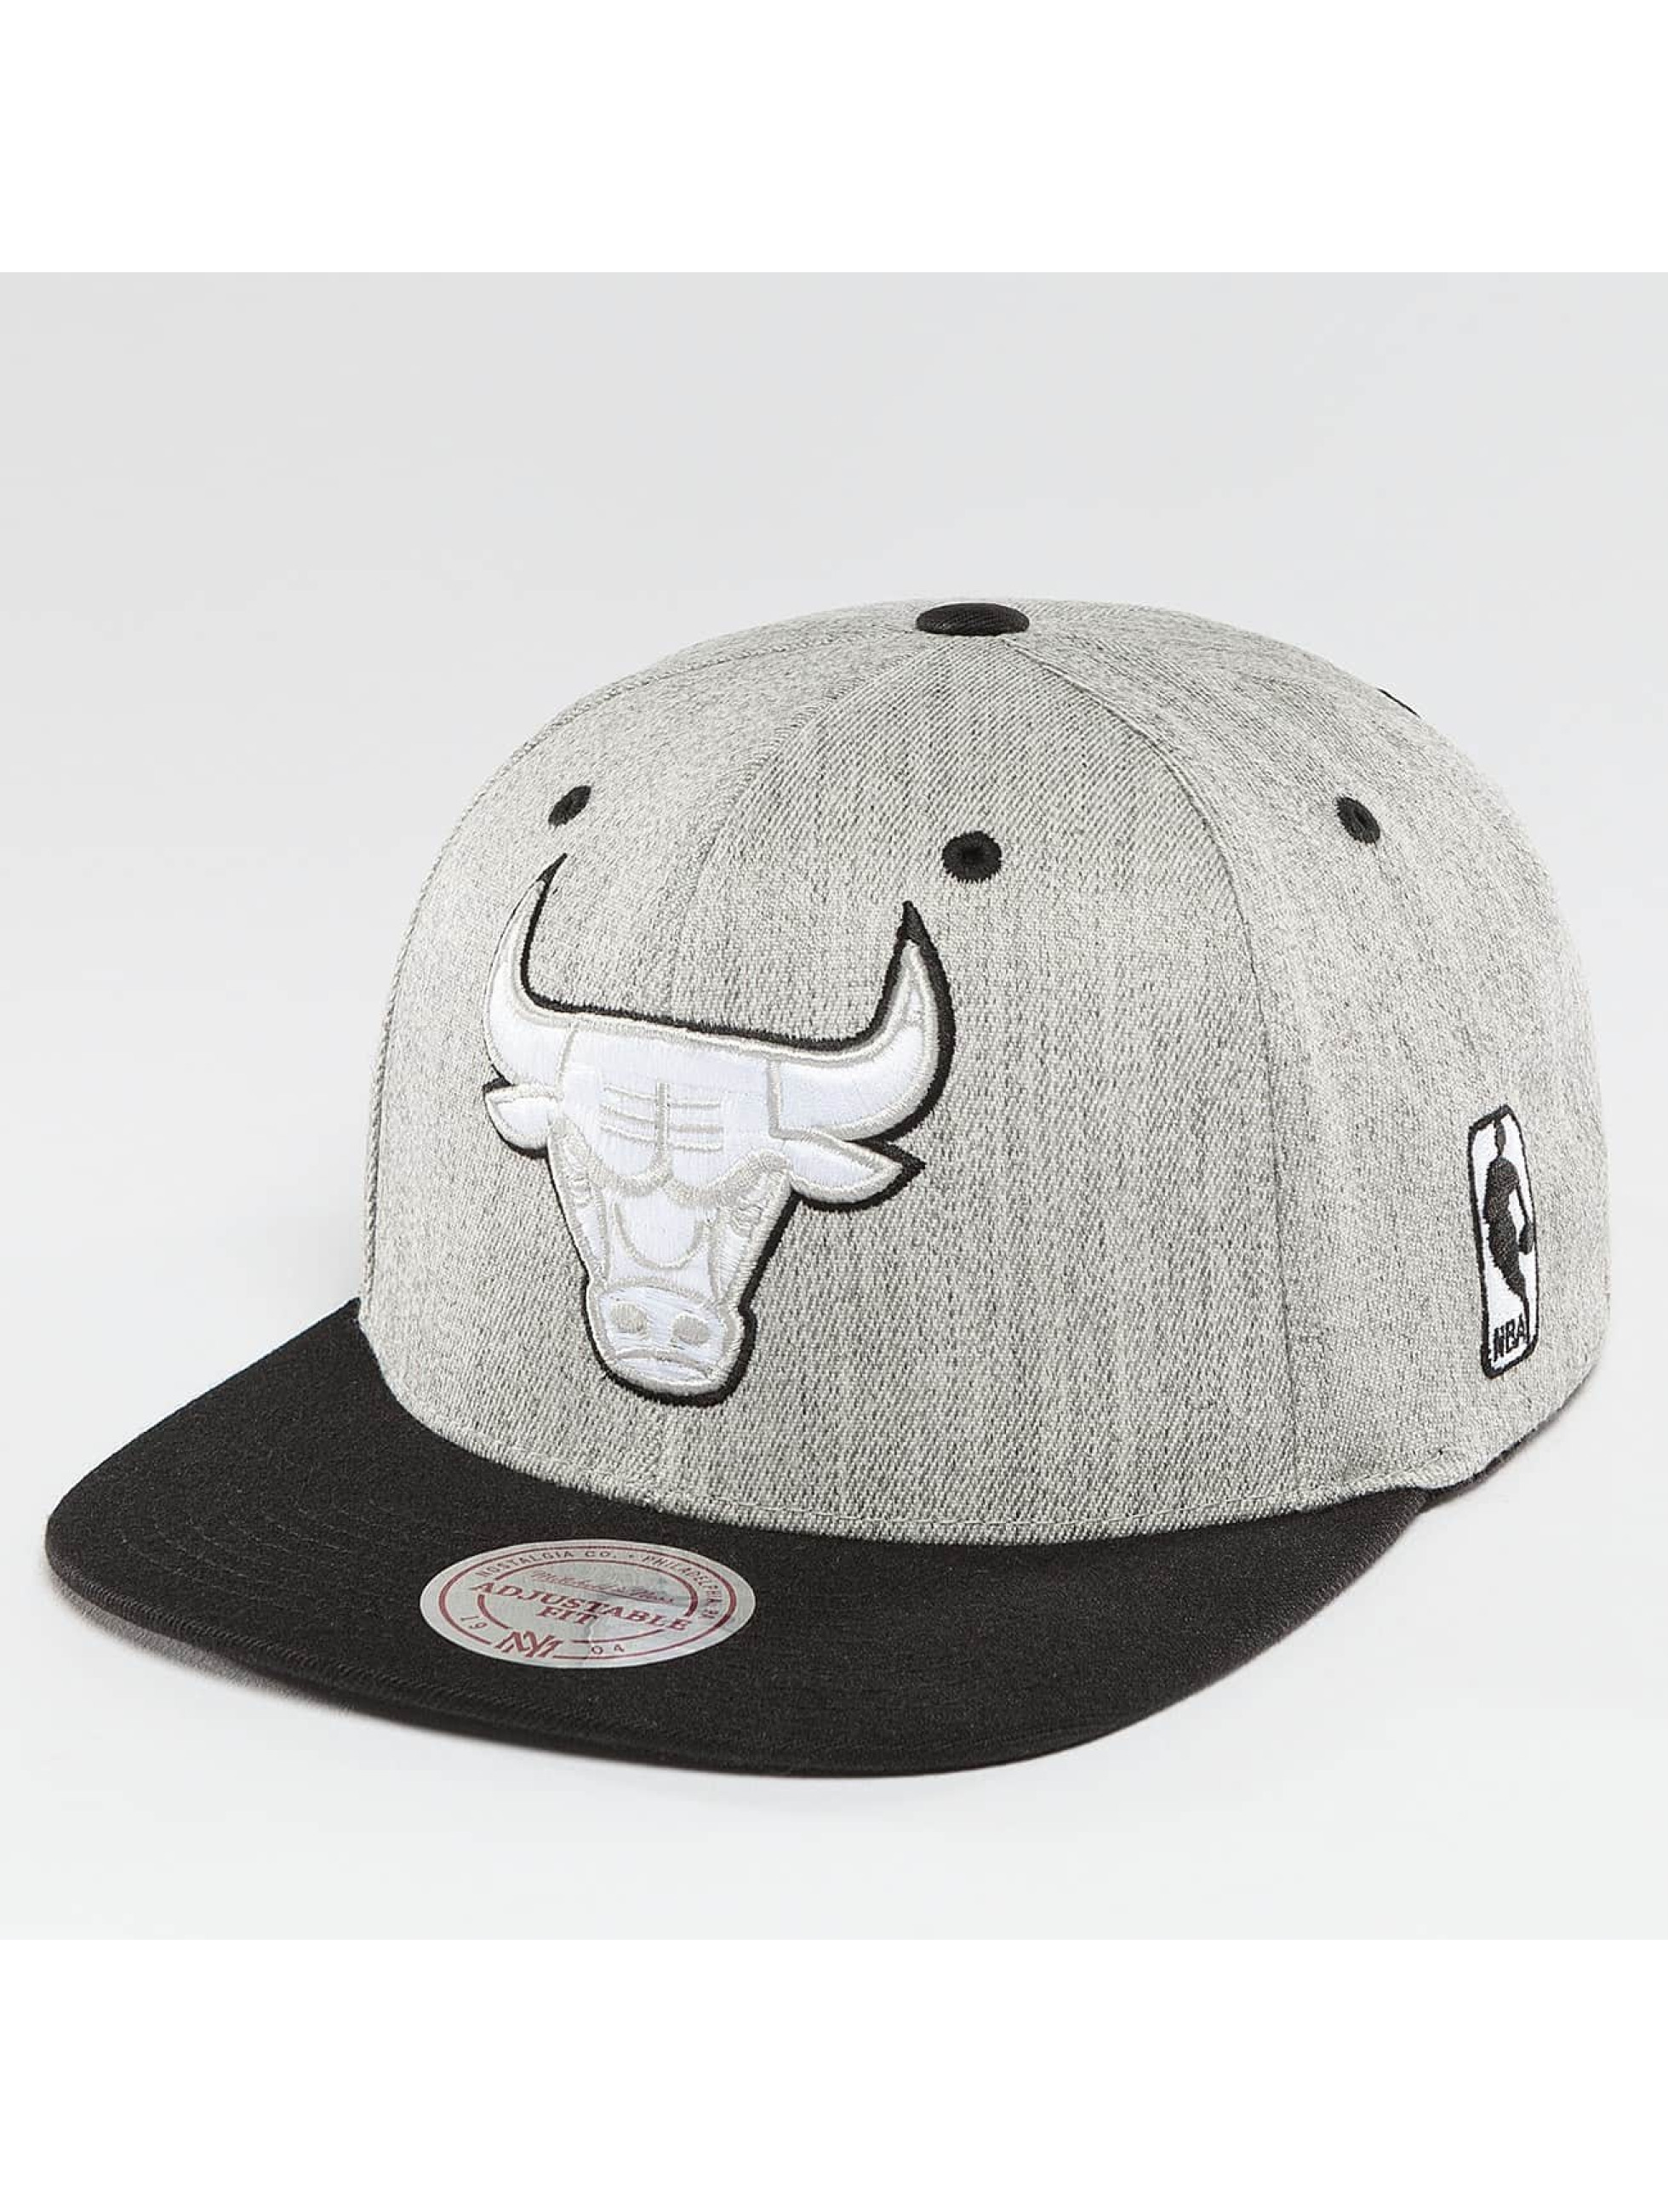 Mitchell & Ness Casquette Snapback & Strapback NBA 3-Tone Logo Chicago Bulls gris